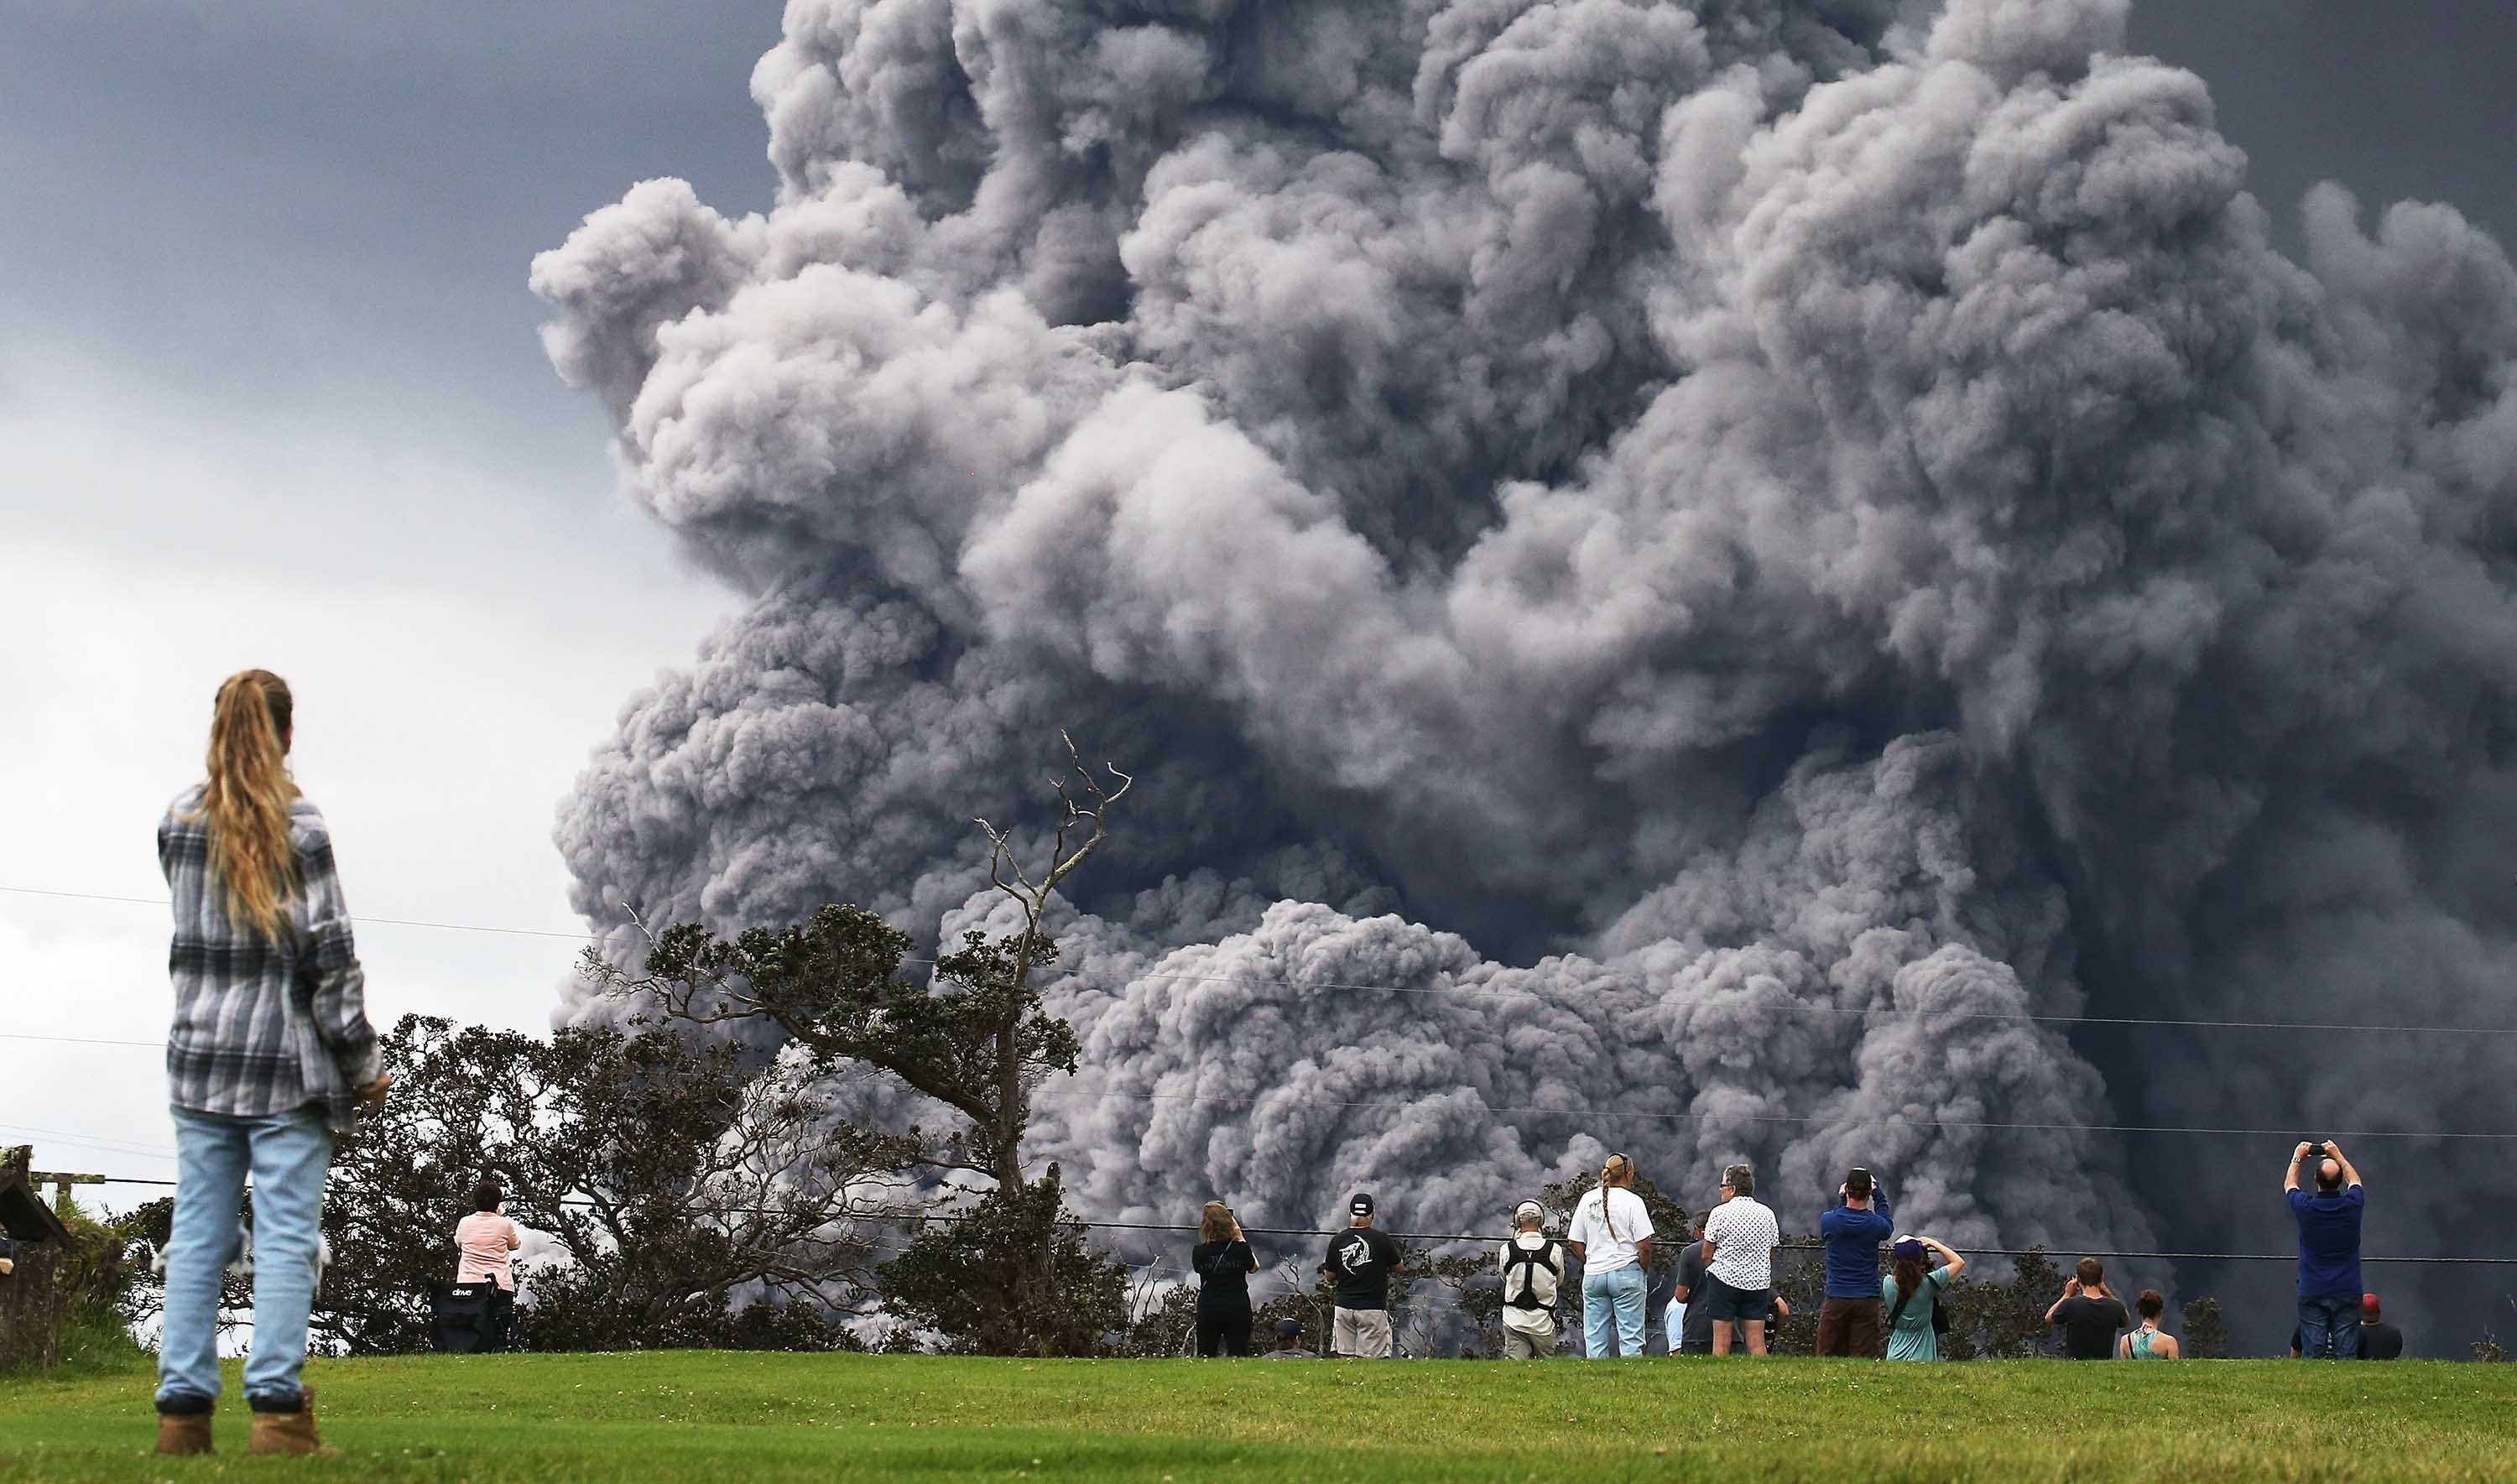 Hawaii warned residents and airplanes to stay away after a plume of ash from the Kilauea volcano rose 12,000 feet into the air.